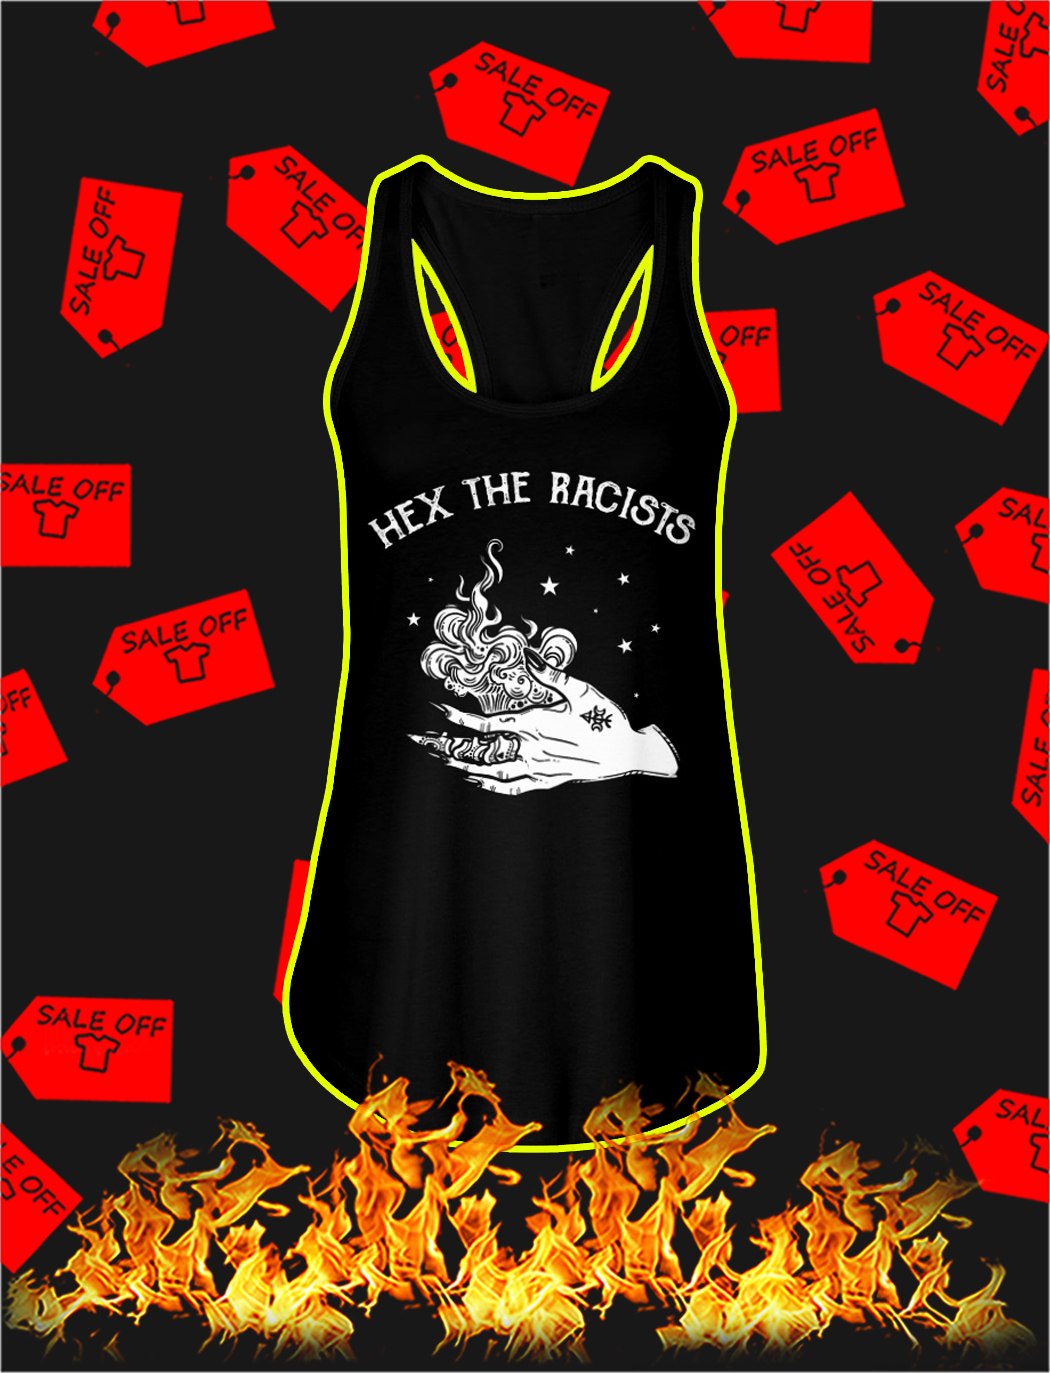 Hex the racists tank top